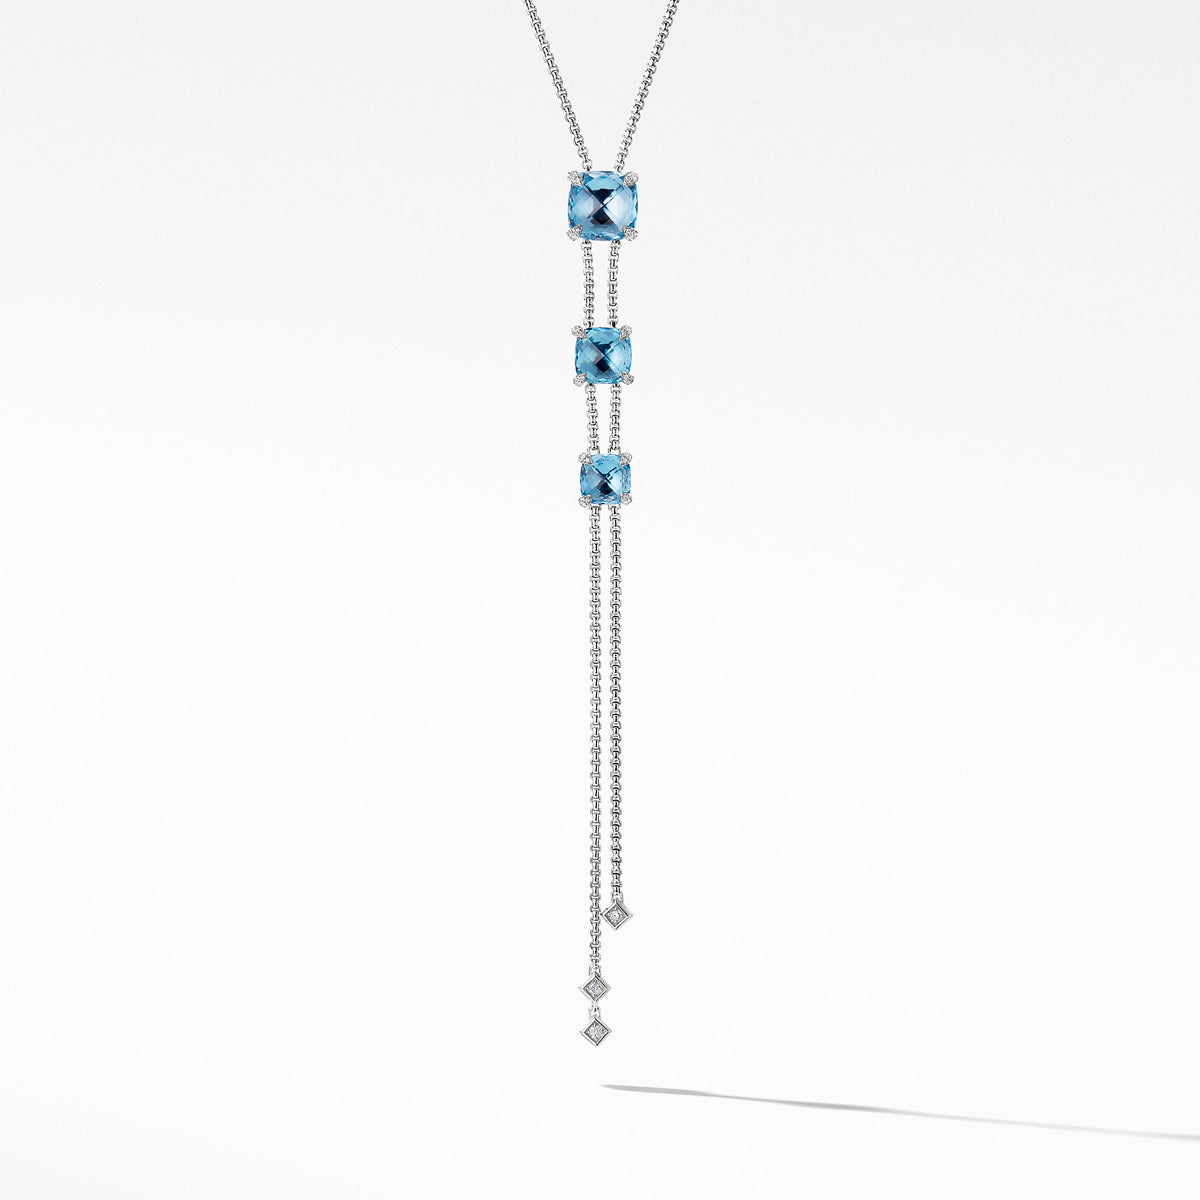 Chatelaine Y Necklace with Blue Topaz and Diamonds